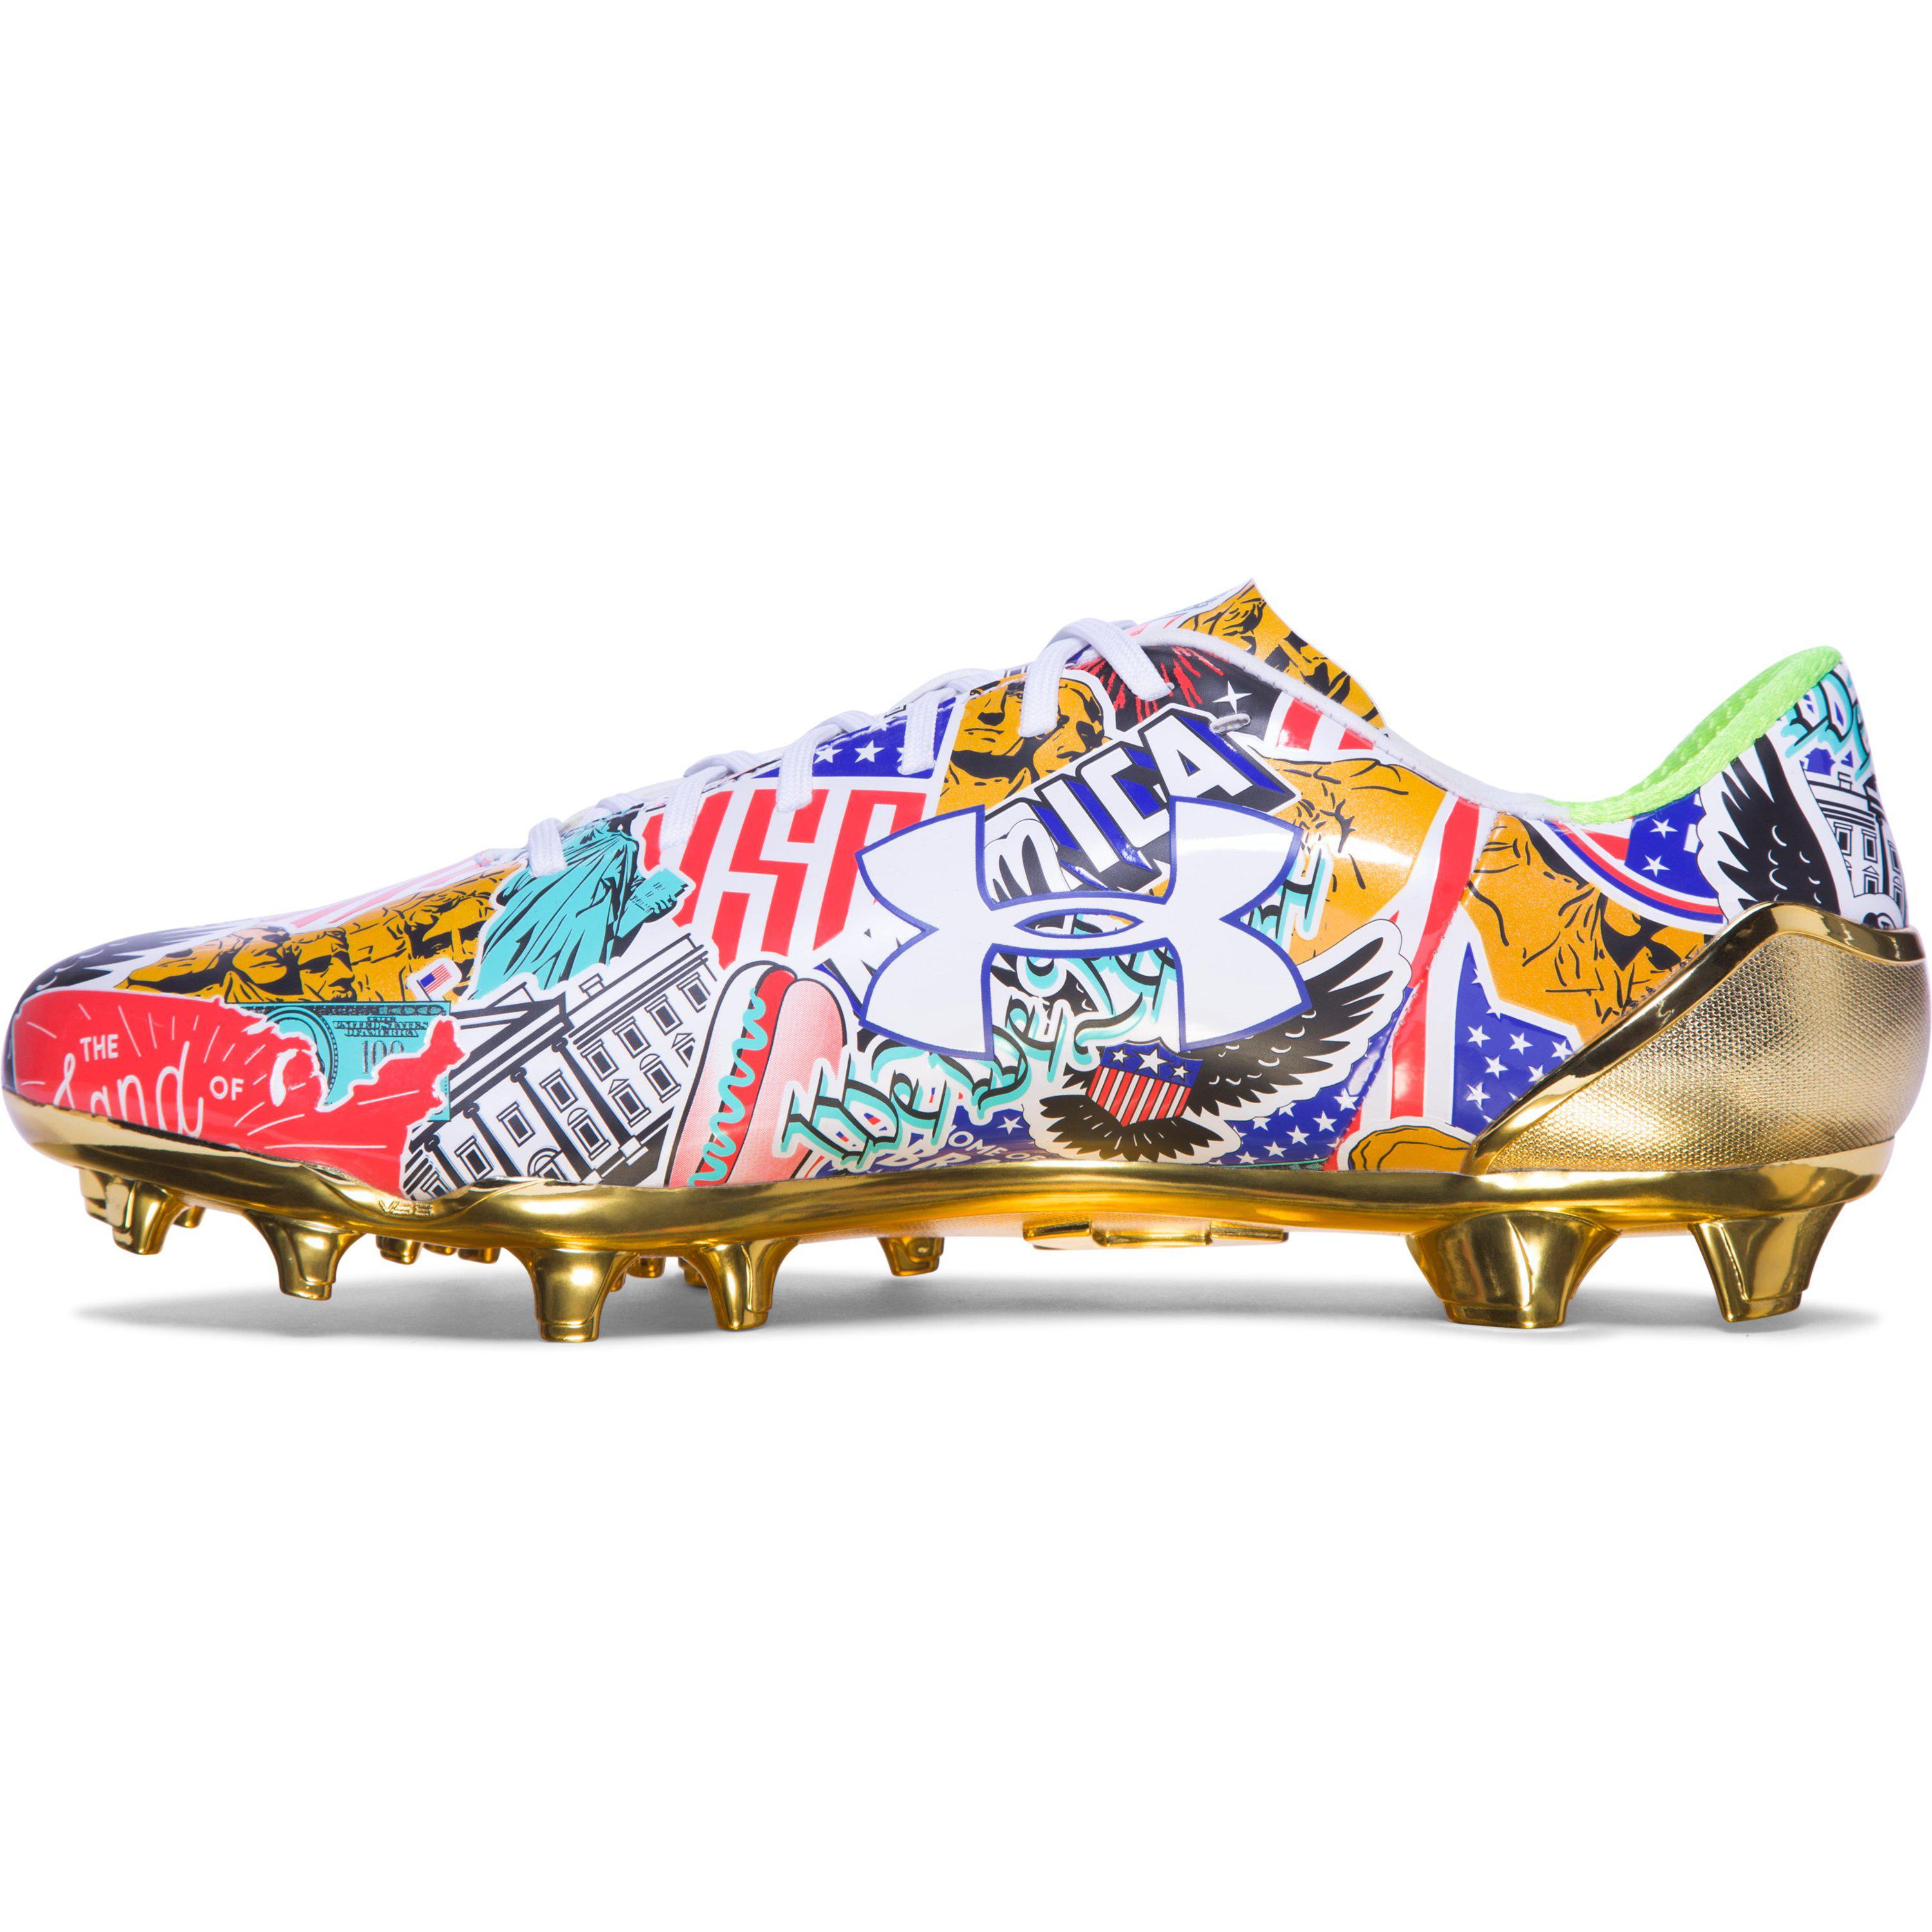 f85778698 Under Armour Ua Spotlight Limited Edition Football Cleats Sneakers ...